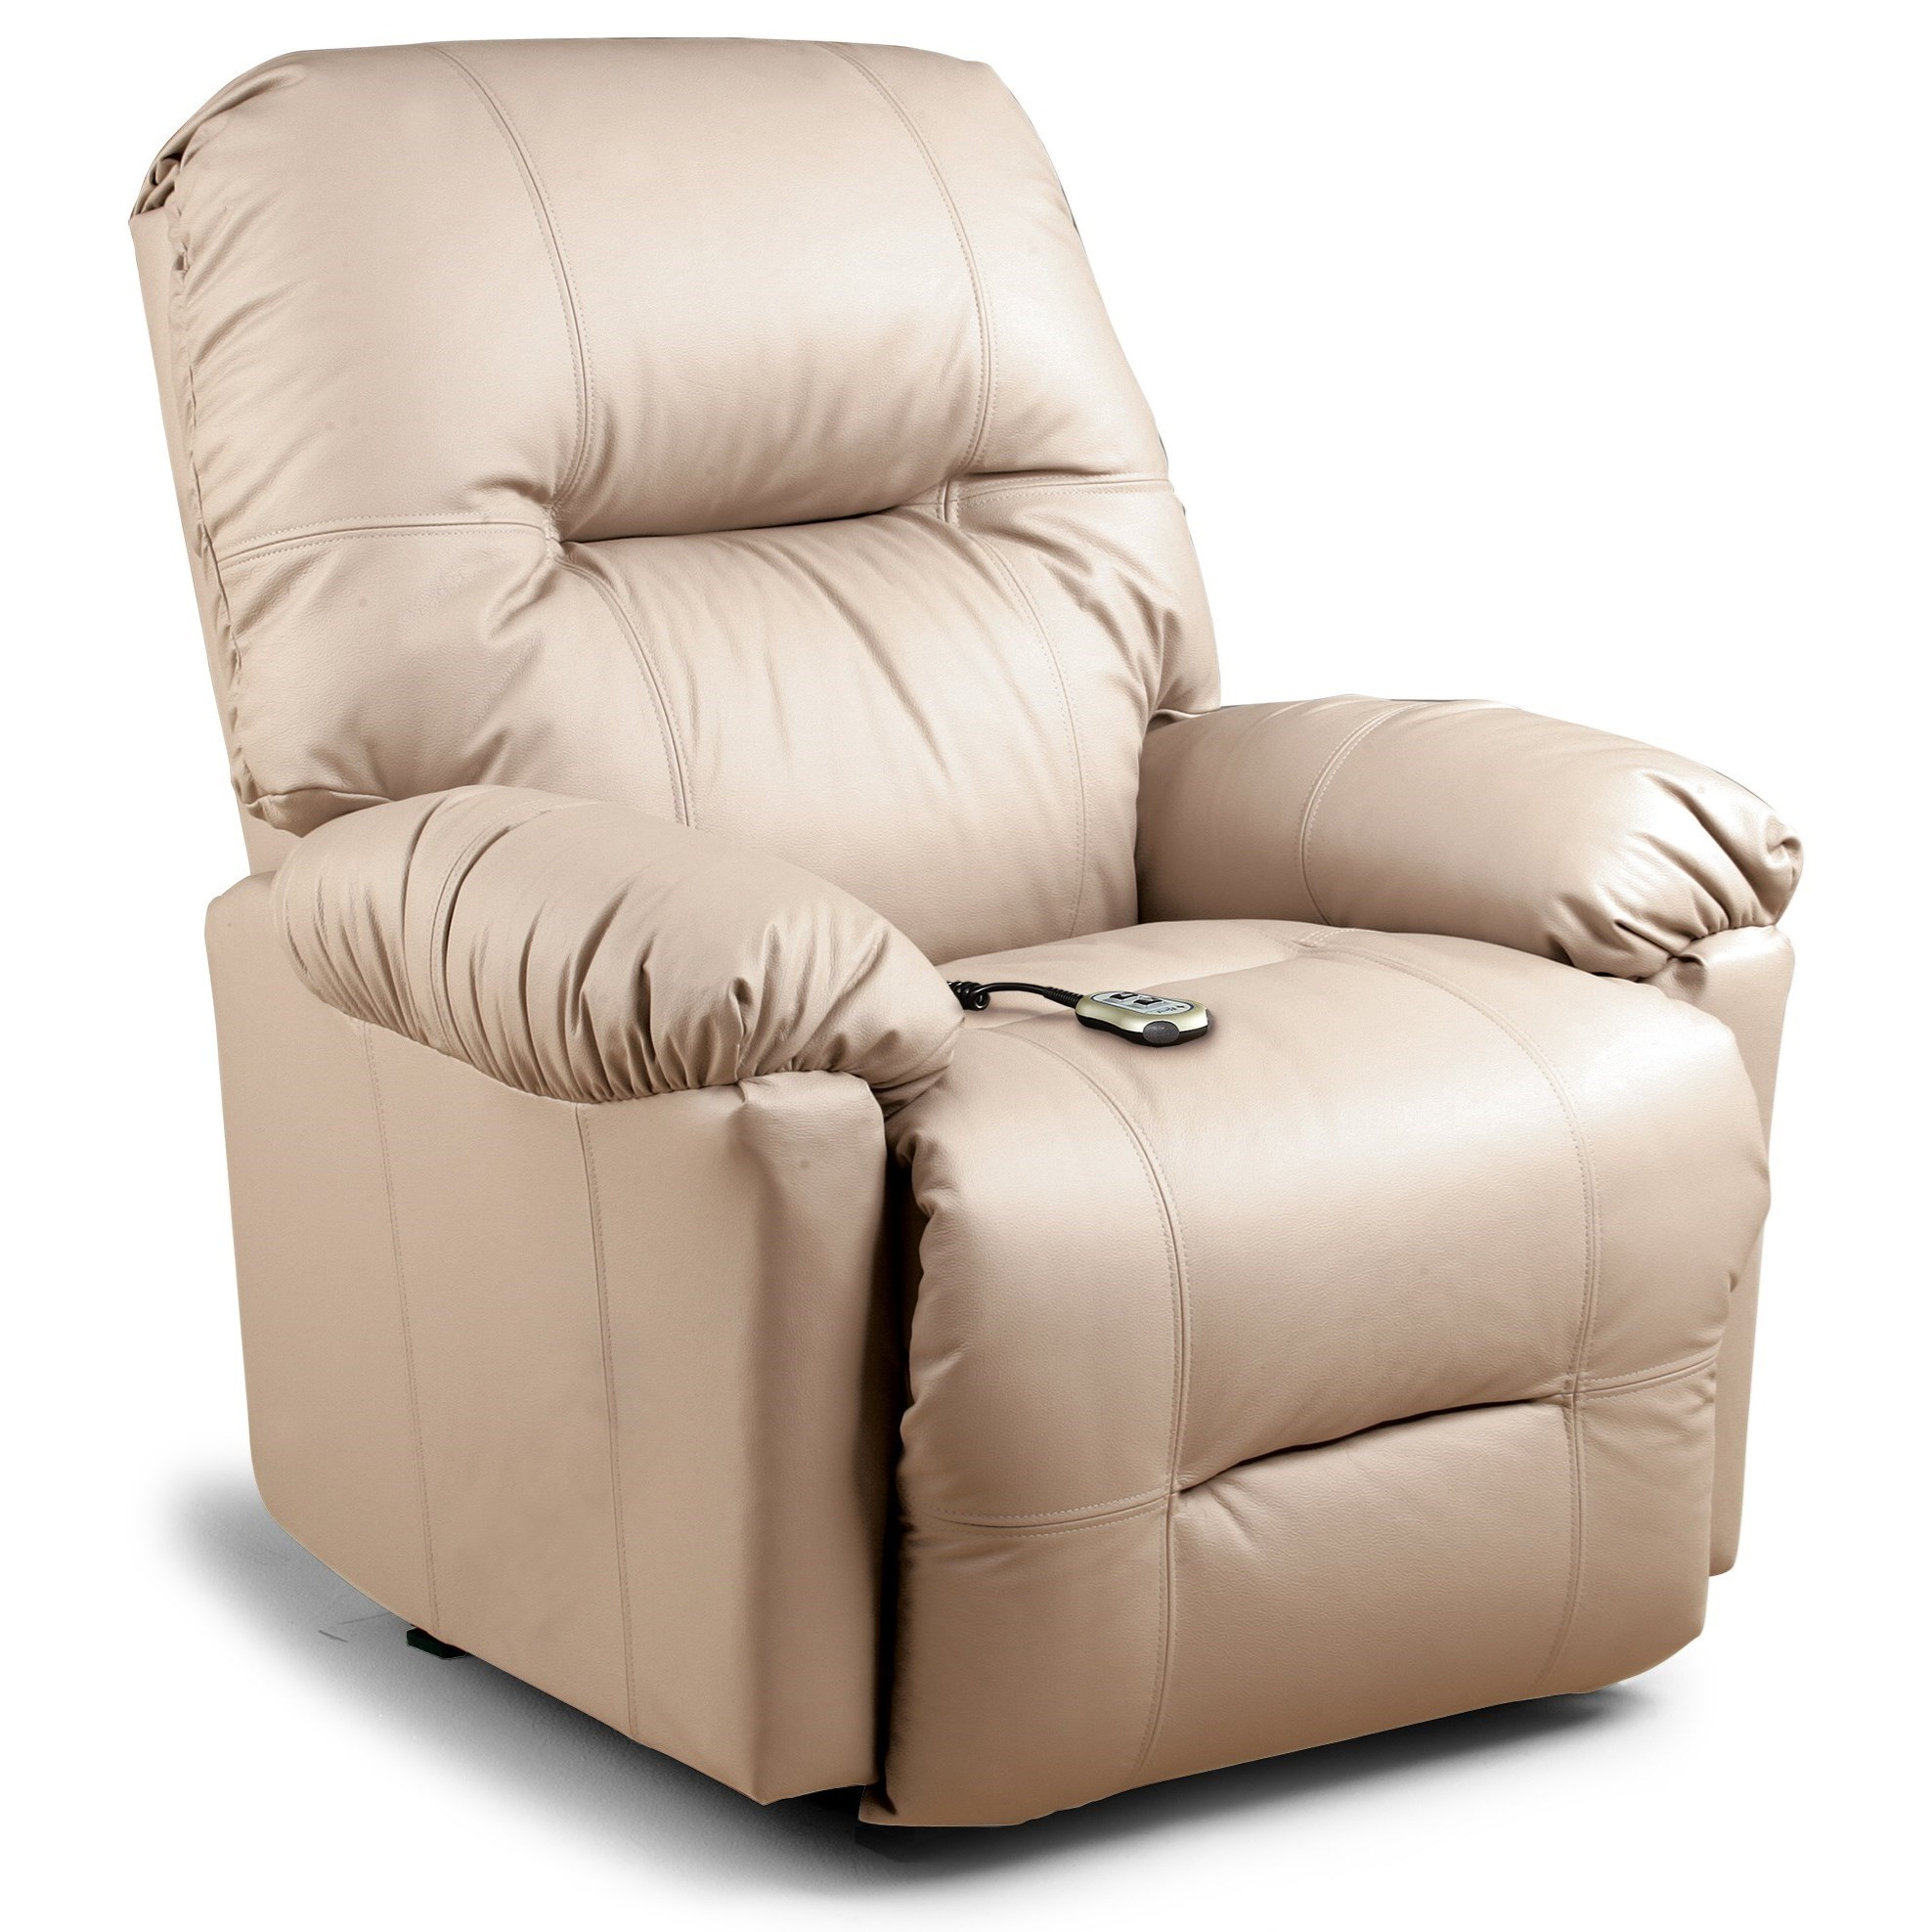 Best home furnishings recliners petite wynette power for Best furnishings